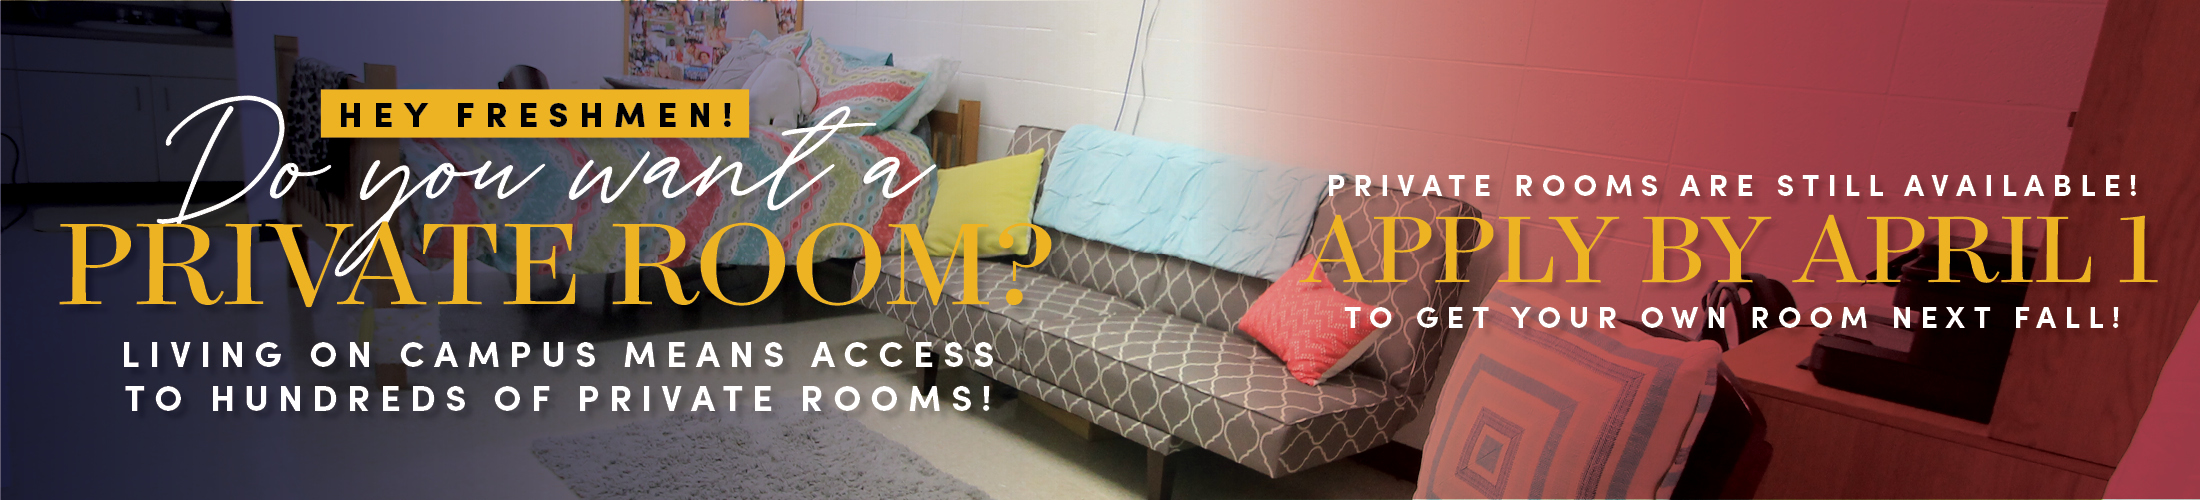 An image depicting a dorm room setup with a couch and bed. Accompanying text says: Hey freshman! Do you want a private room? Living on campus means access to hundres of private rooms! Private rooms are still available! Apply by April 1st to get your own room next fall. New rooms in Epsilon!